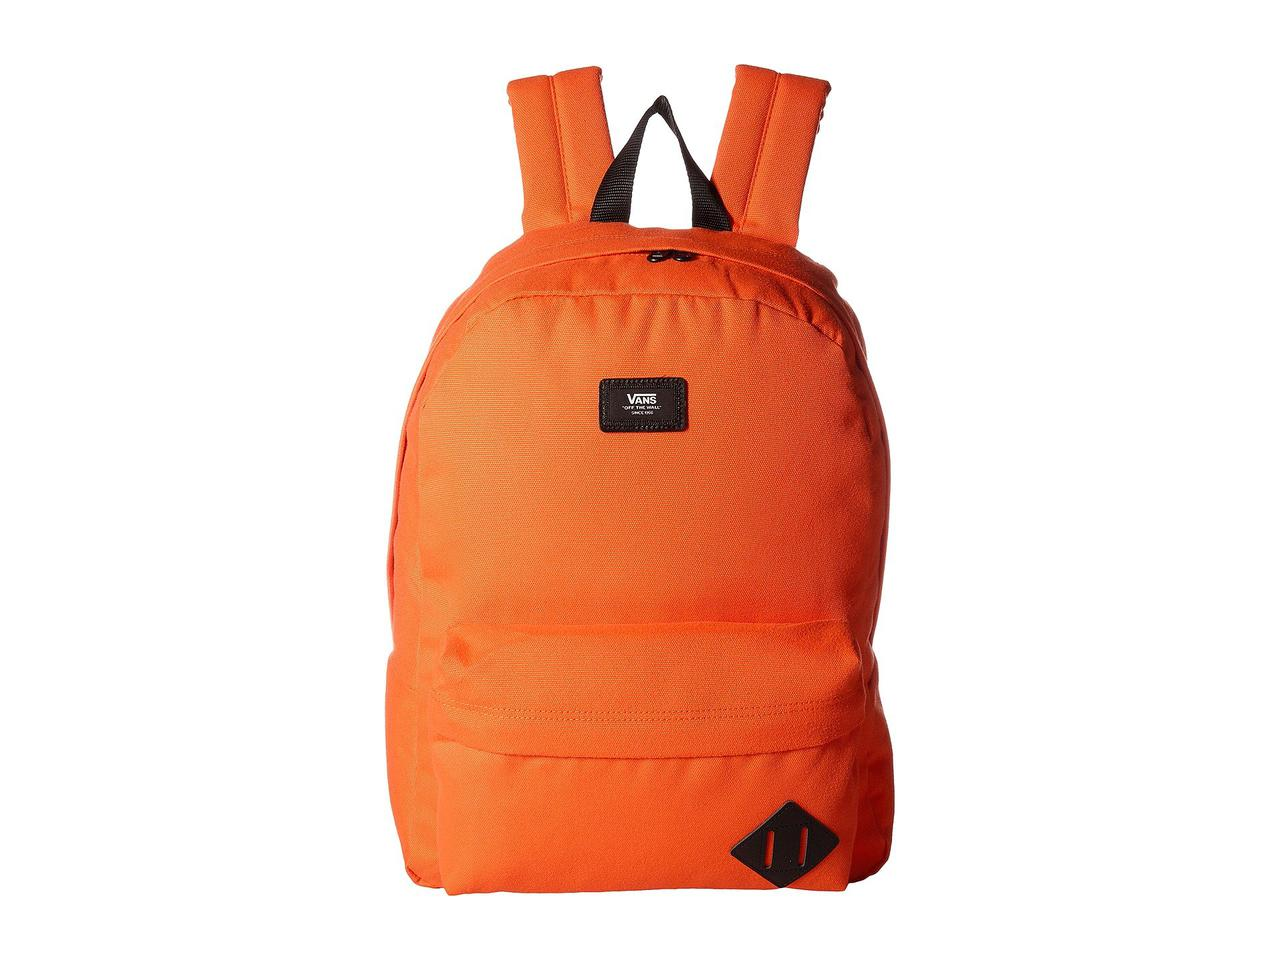 a7dc73fcd069 Рюкзак (Оригинал) Vans Old Skool II Backpack Flame - TopUSA